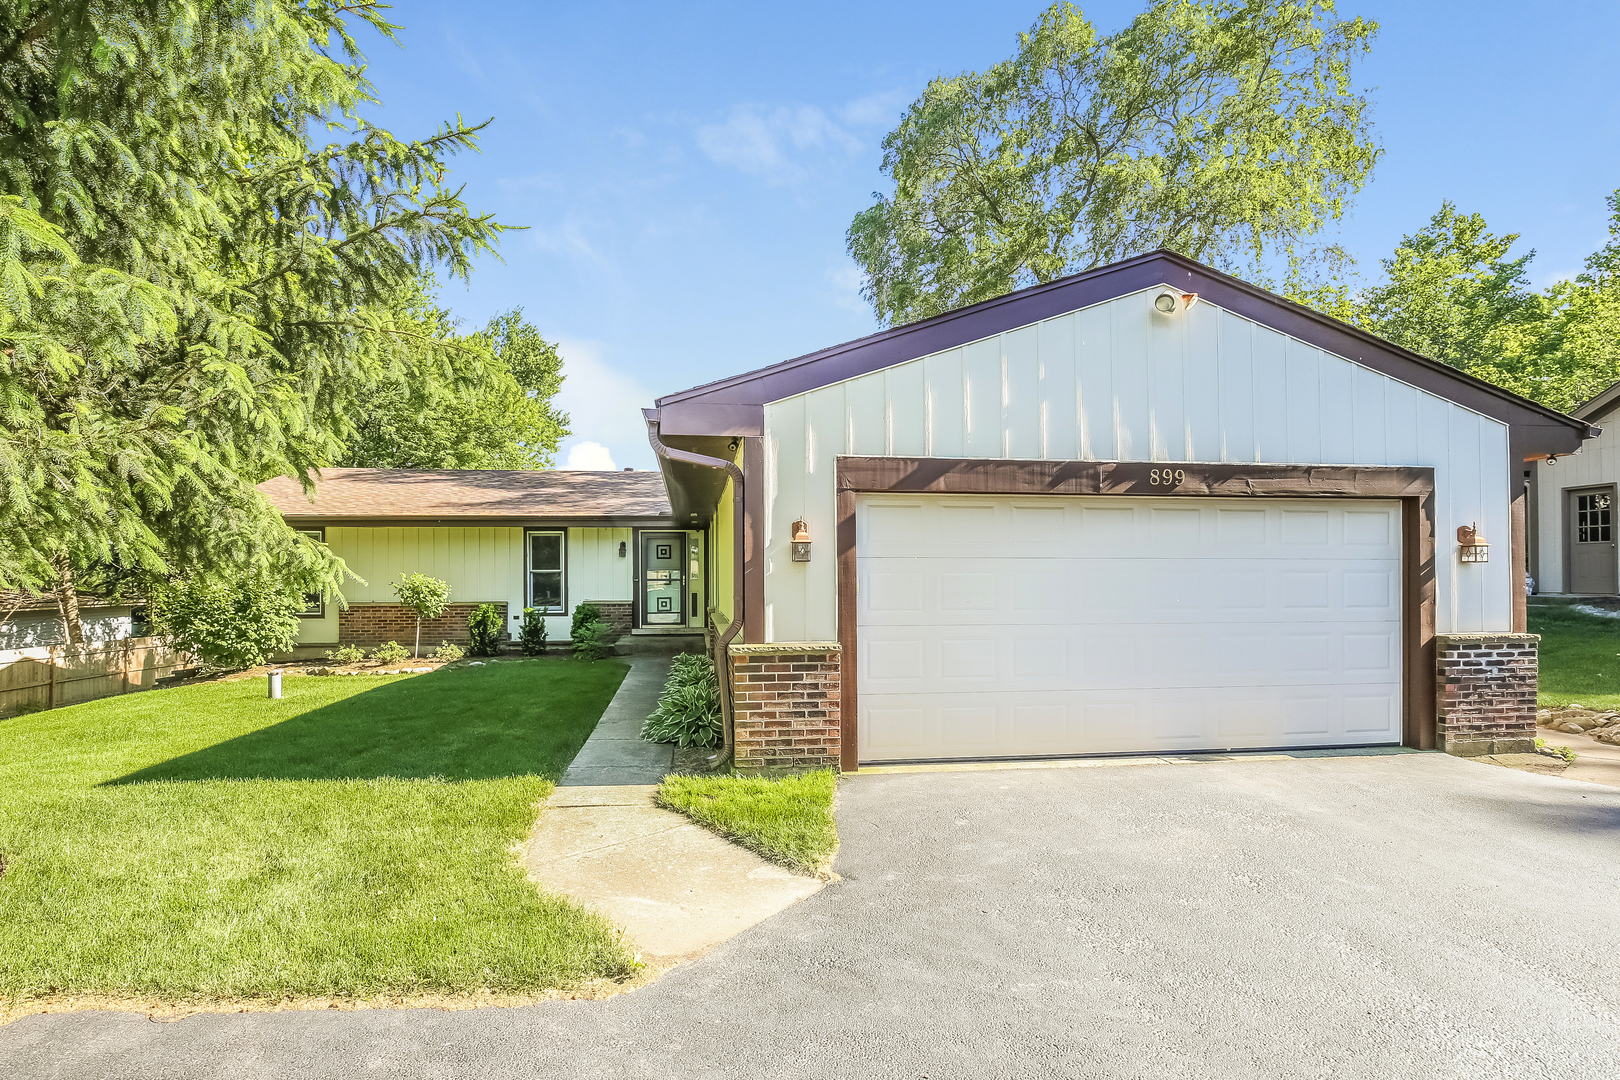 Photo for 899 E Main Street Road, Cary, IL 60013 (MLS # 10600684)